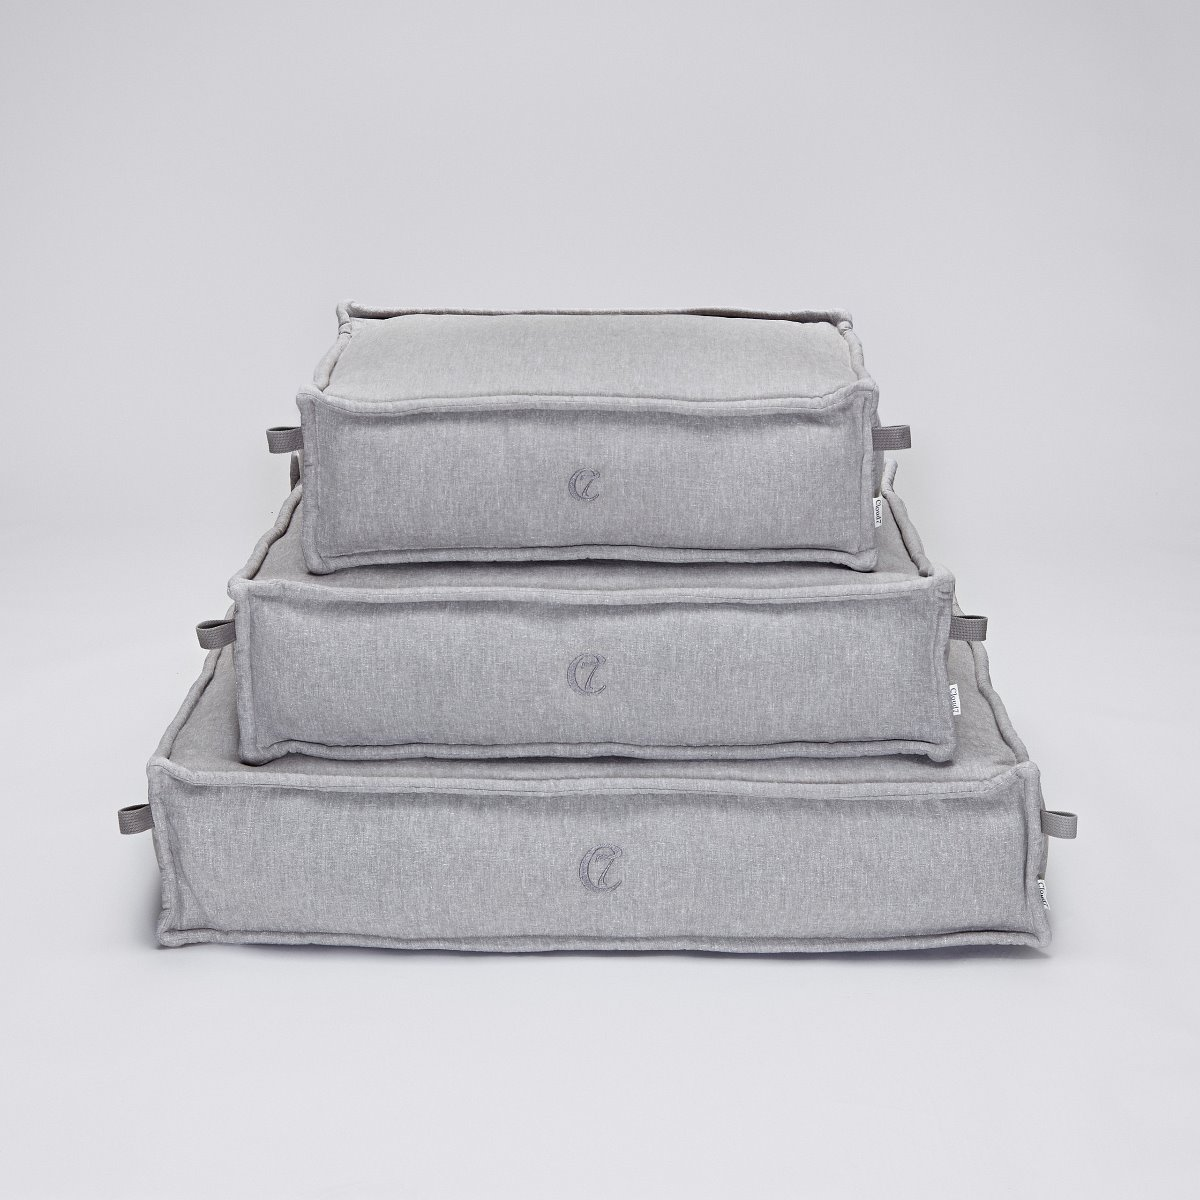 DOG BED COZY LIGHT GREY